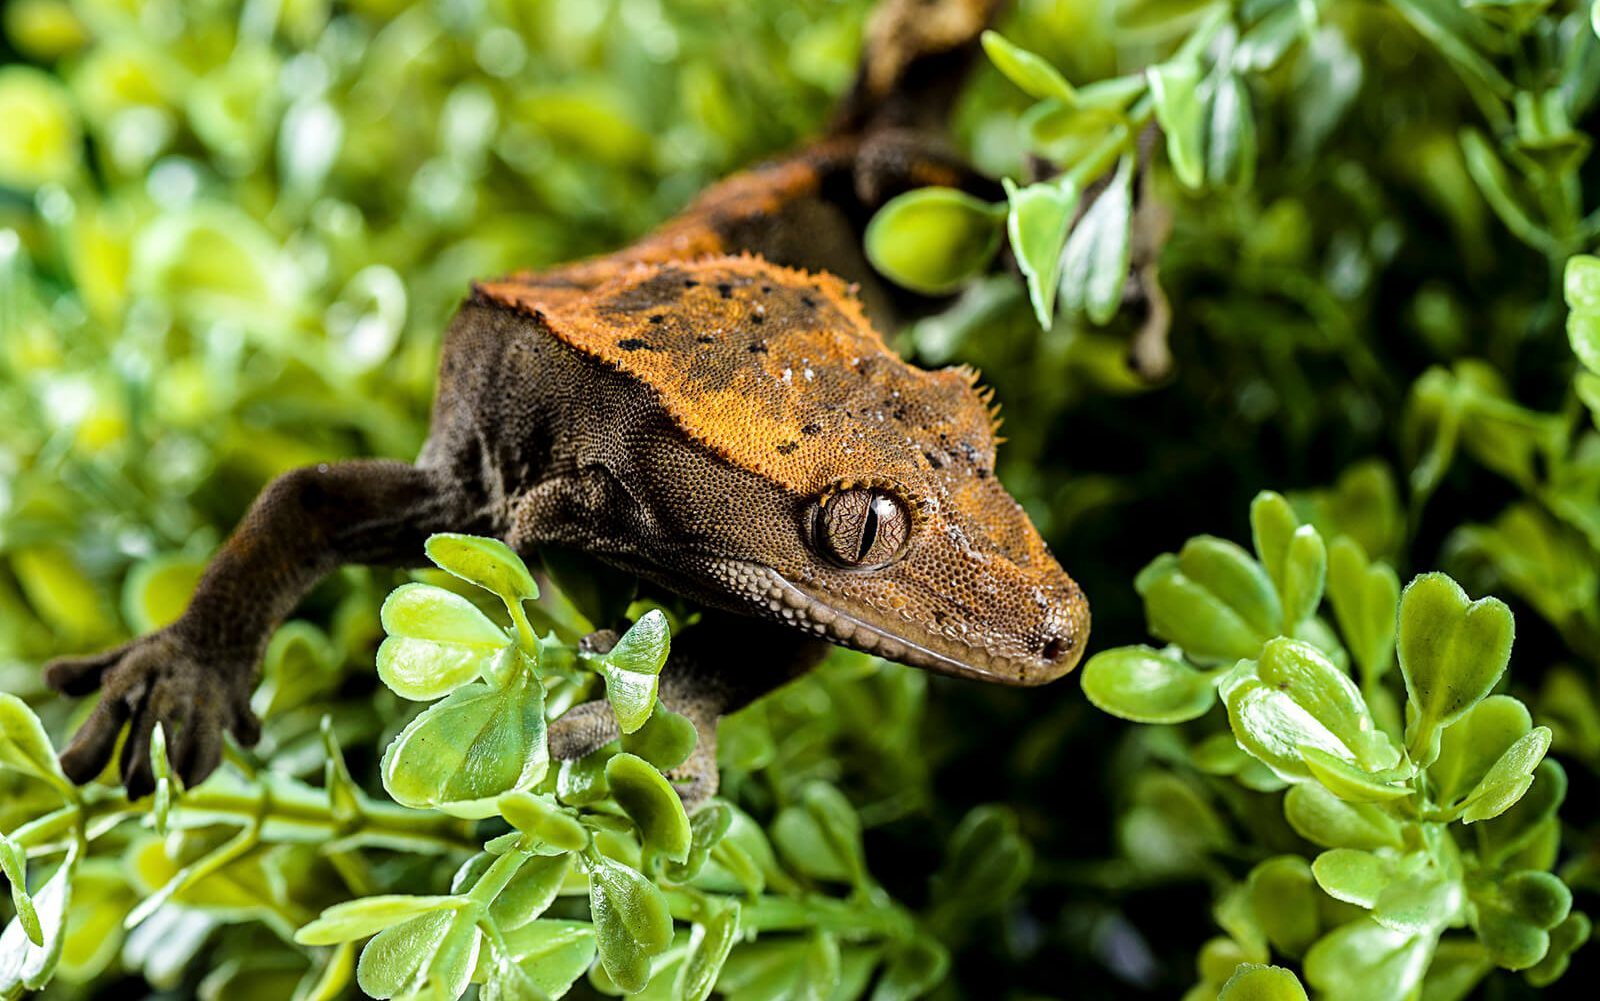 Crested Gecko Not Moving